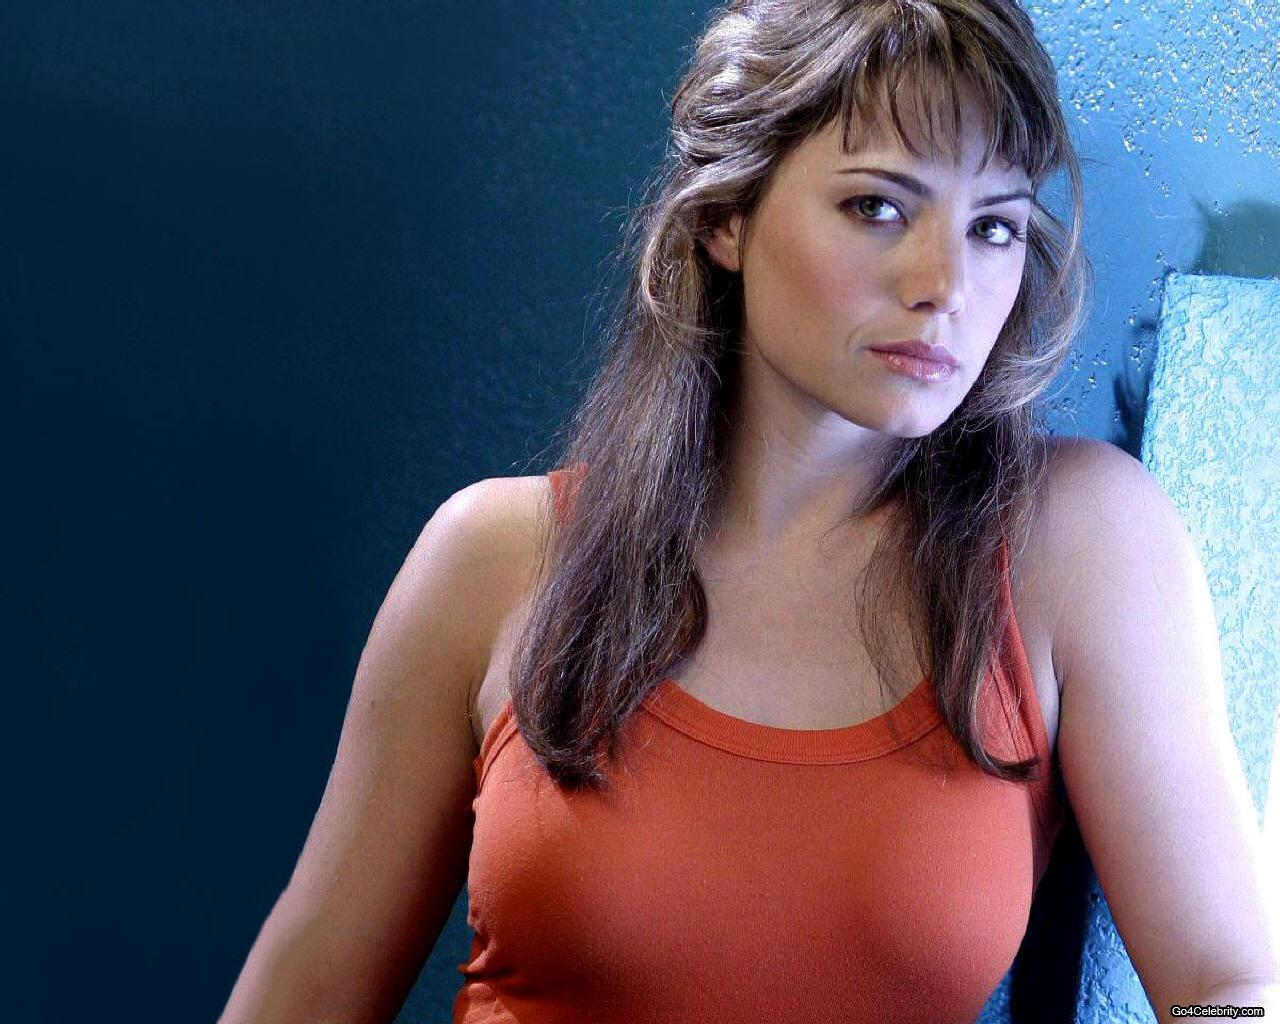 erica durance images wallpaper - photo #25